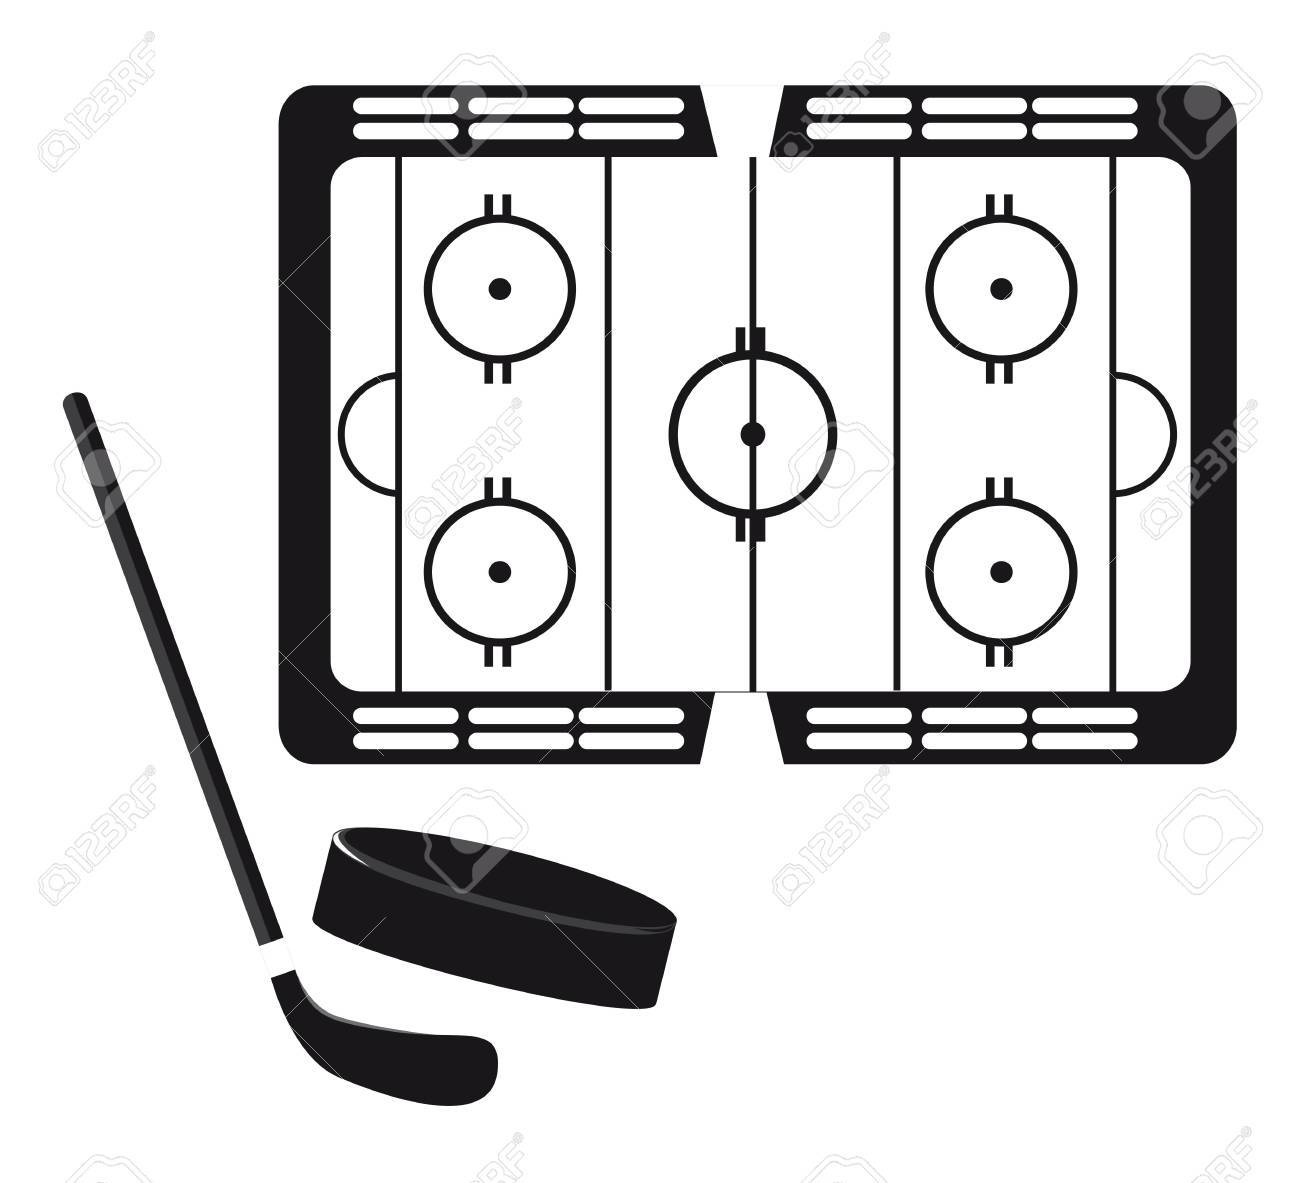 hockey pitch with hockey puck and stick silhouette. vector Stock Vector - 11877897